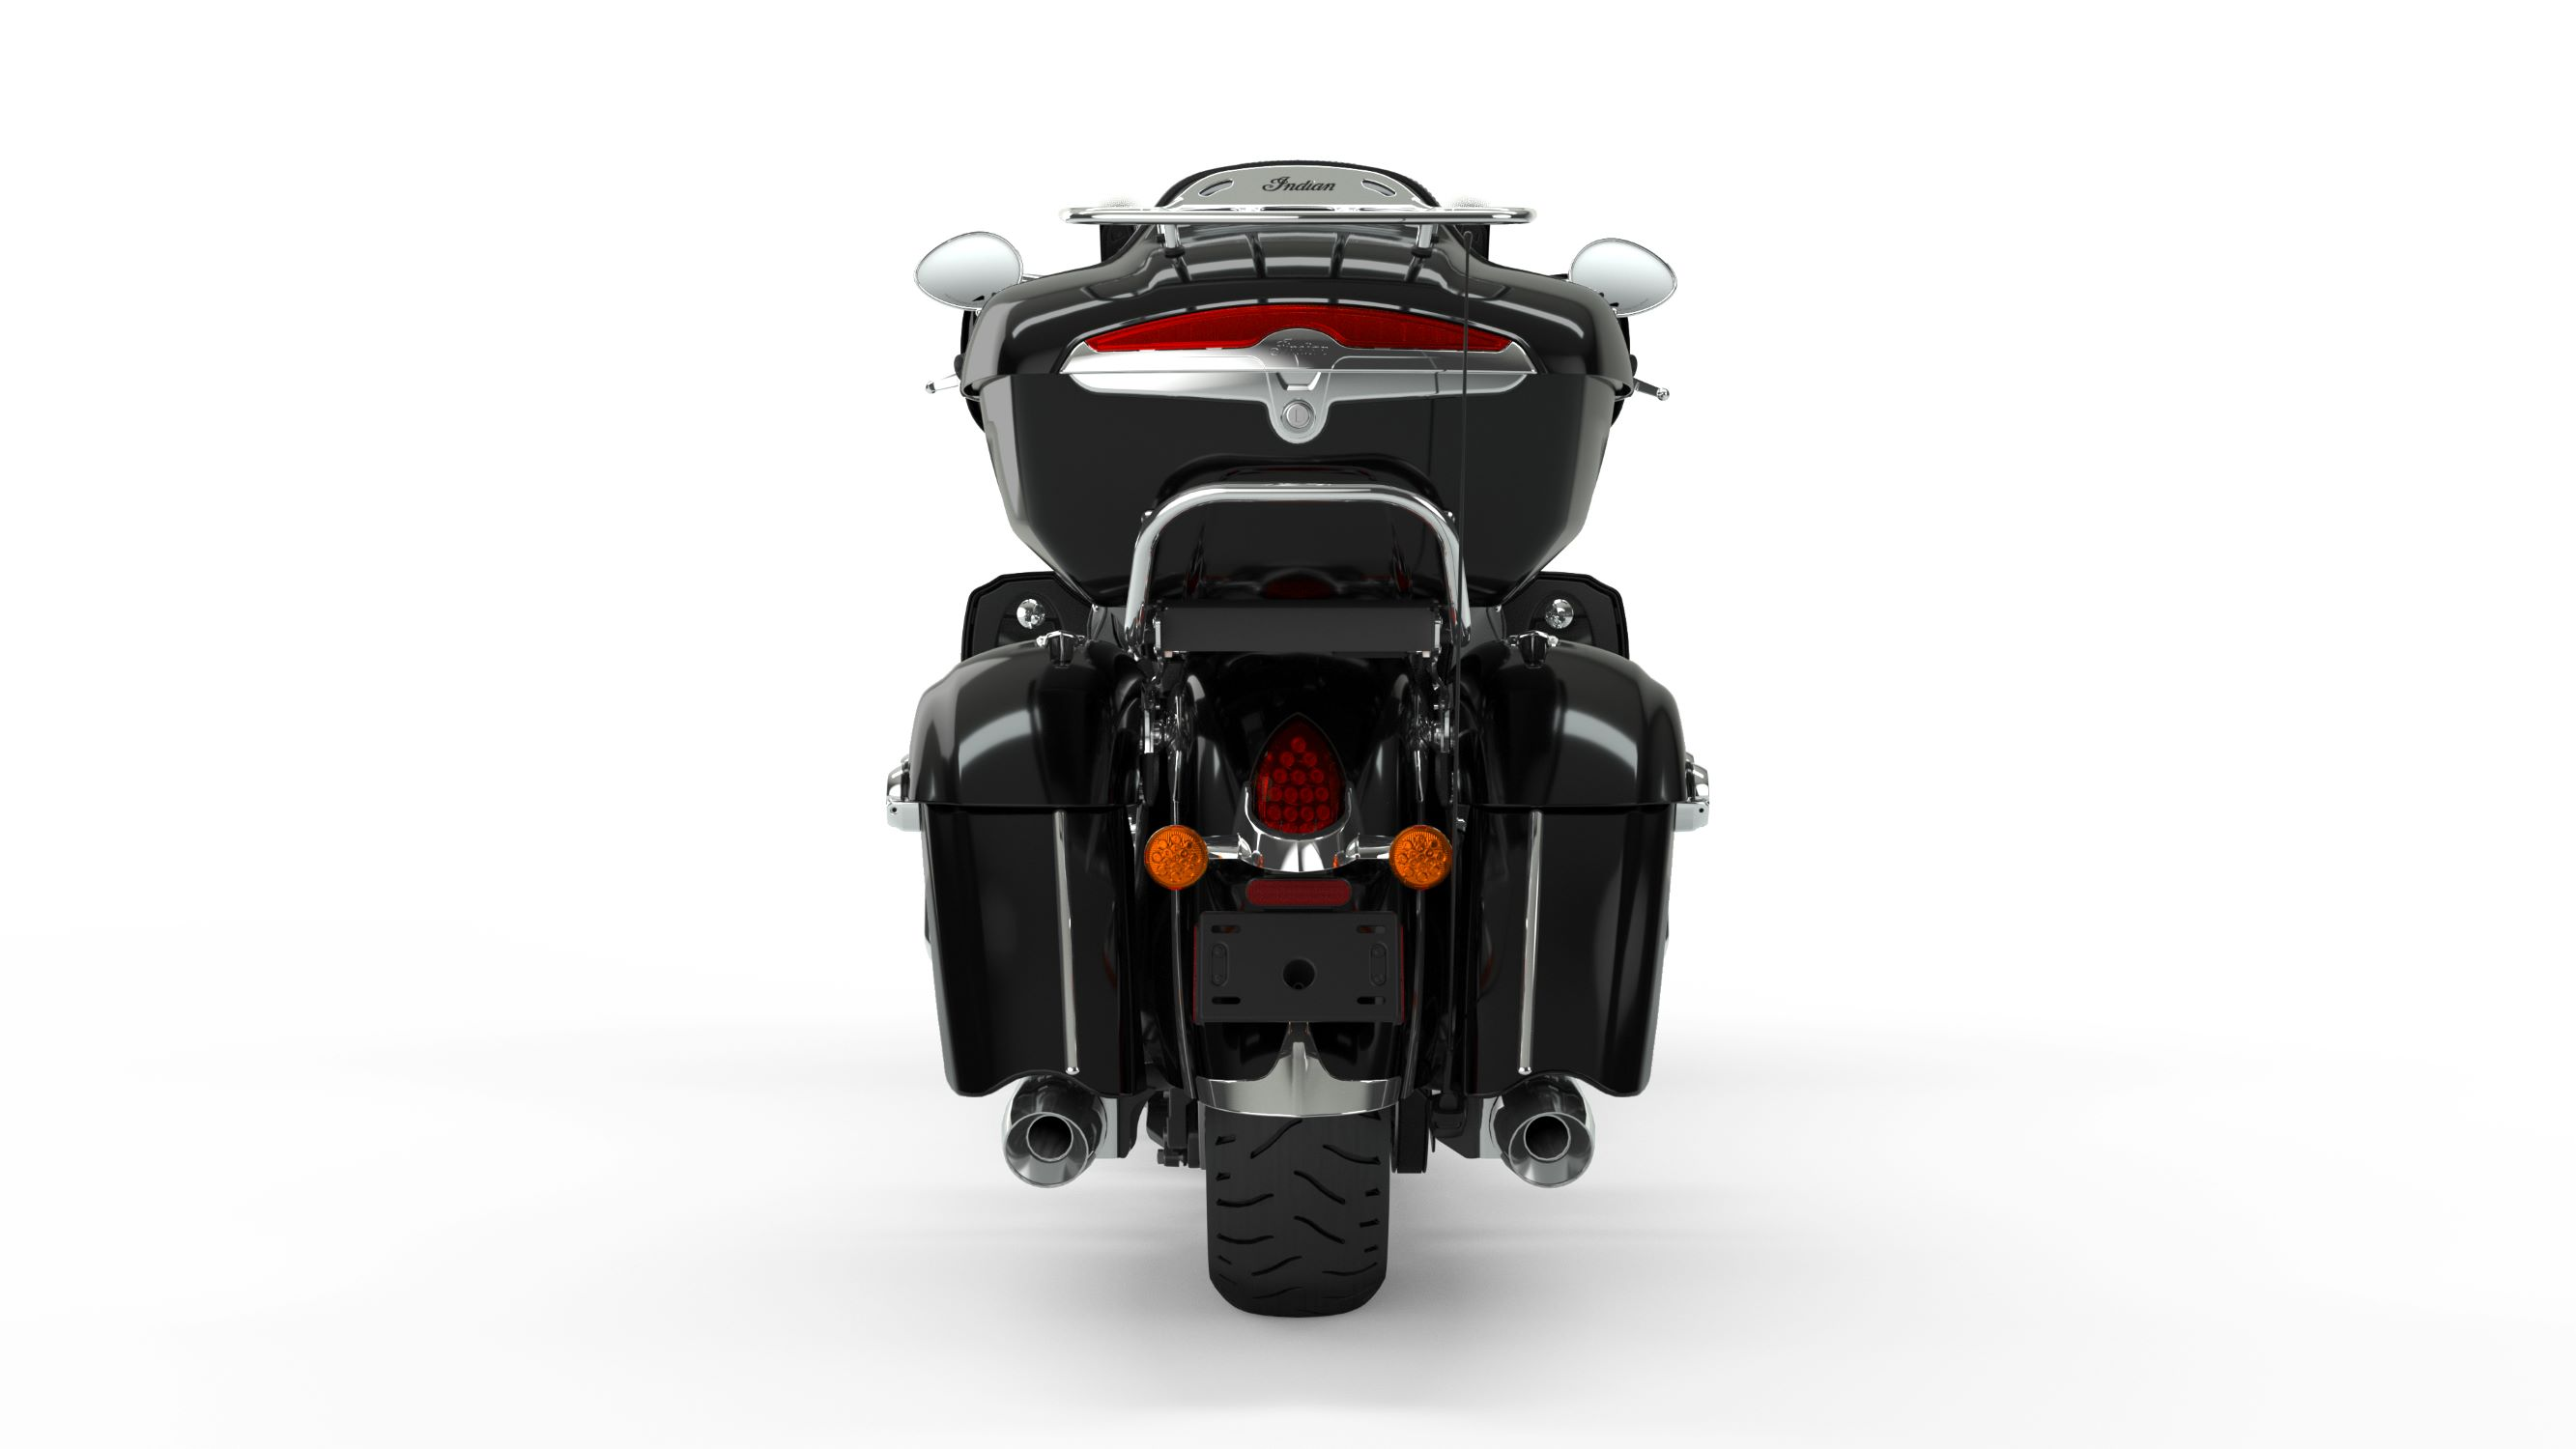 2019 Roadmaster Thunder Black Rear